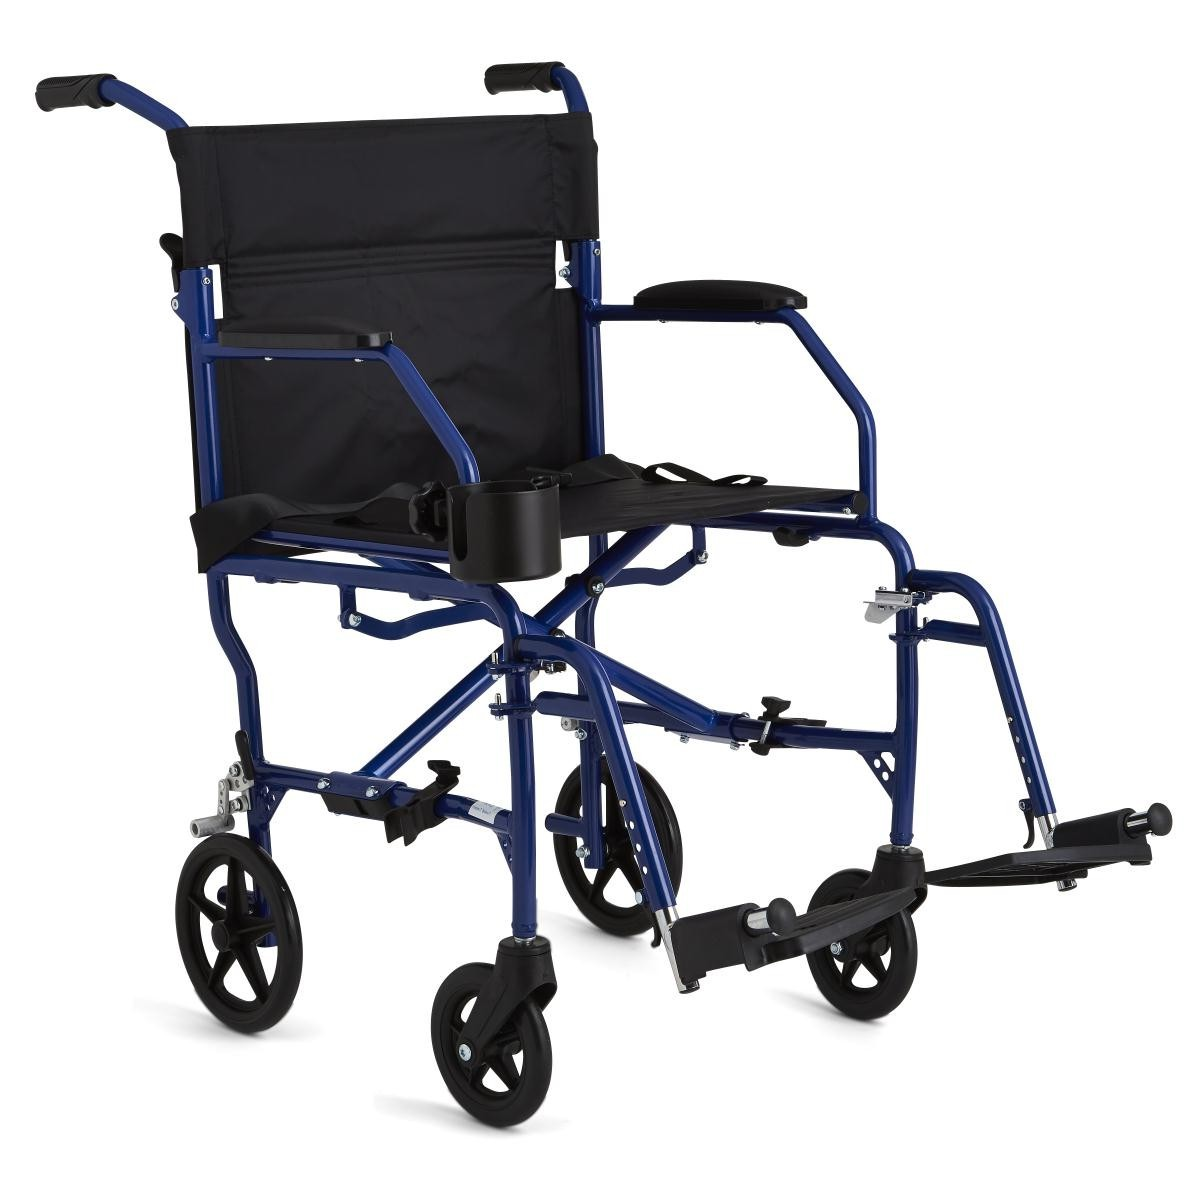 Blue Medline Ultralight Transport Wheelchair with 4 wheels and 2 footrests